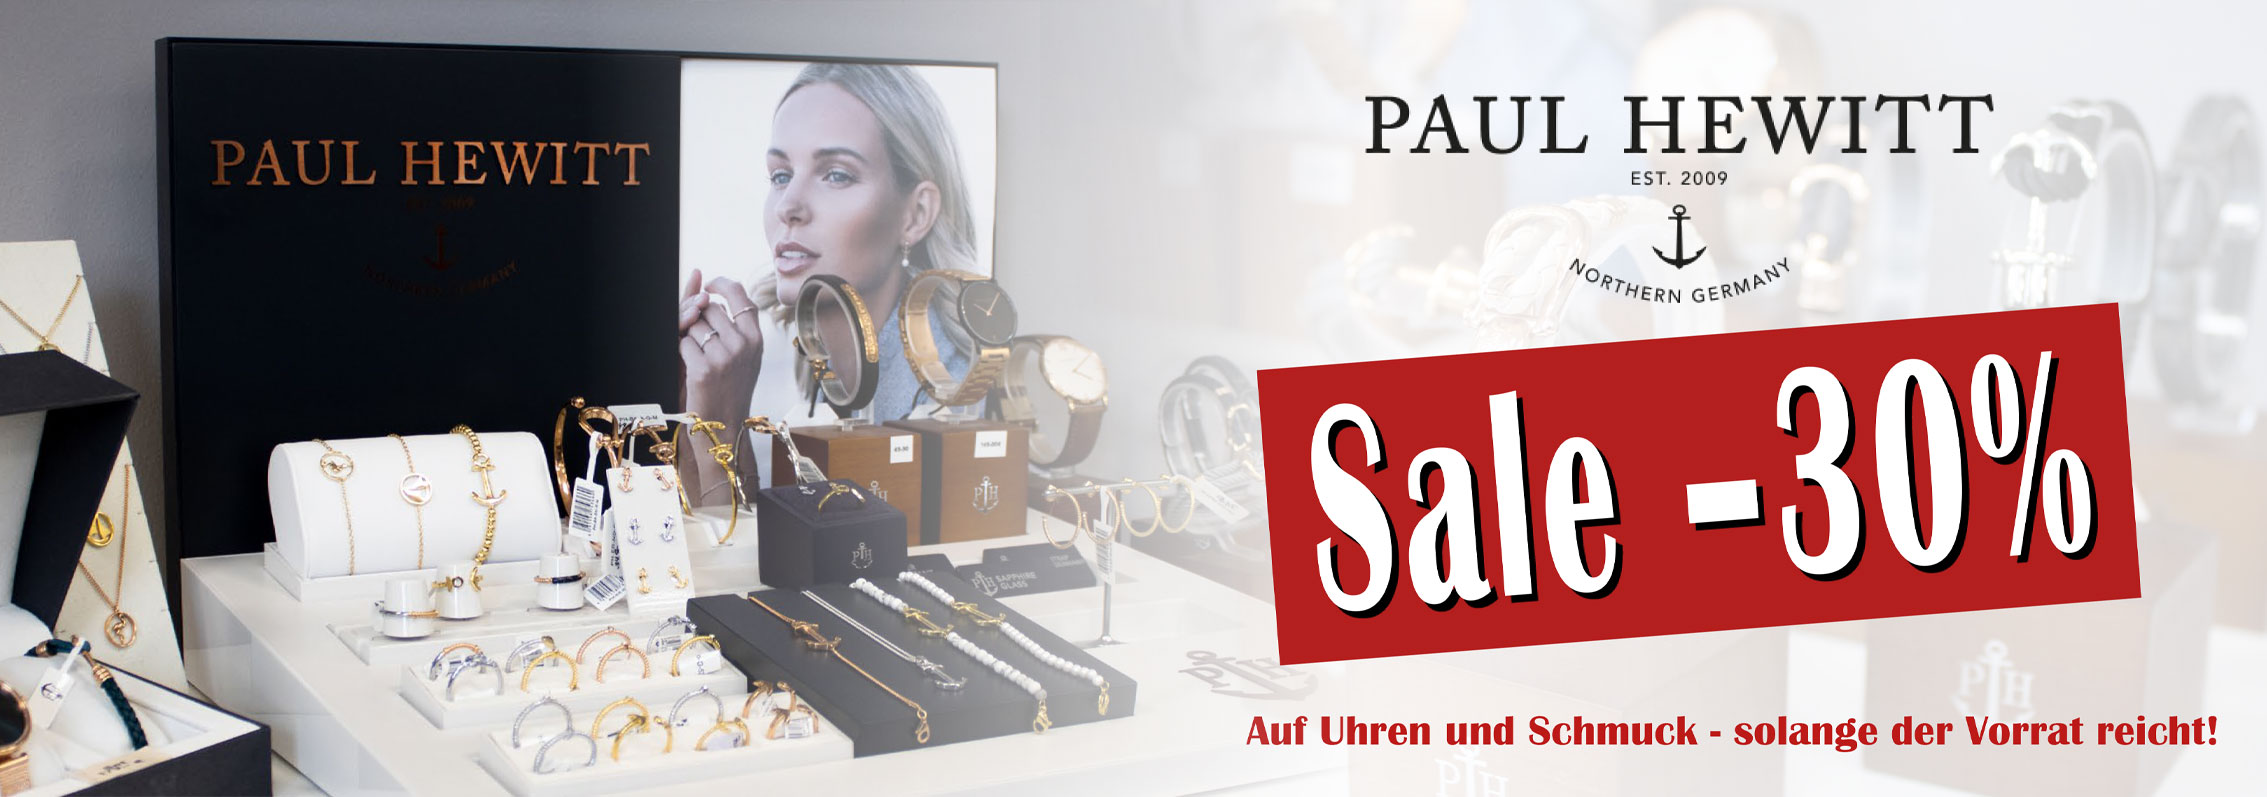 Paul Hewitt Sale 30%